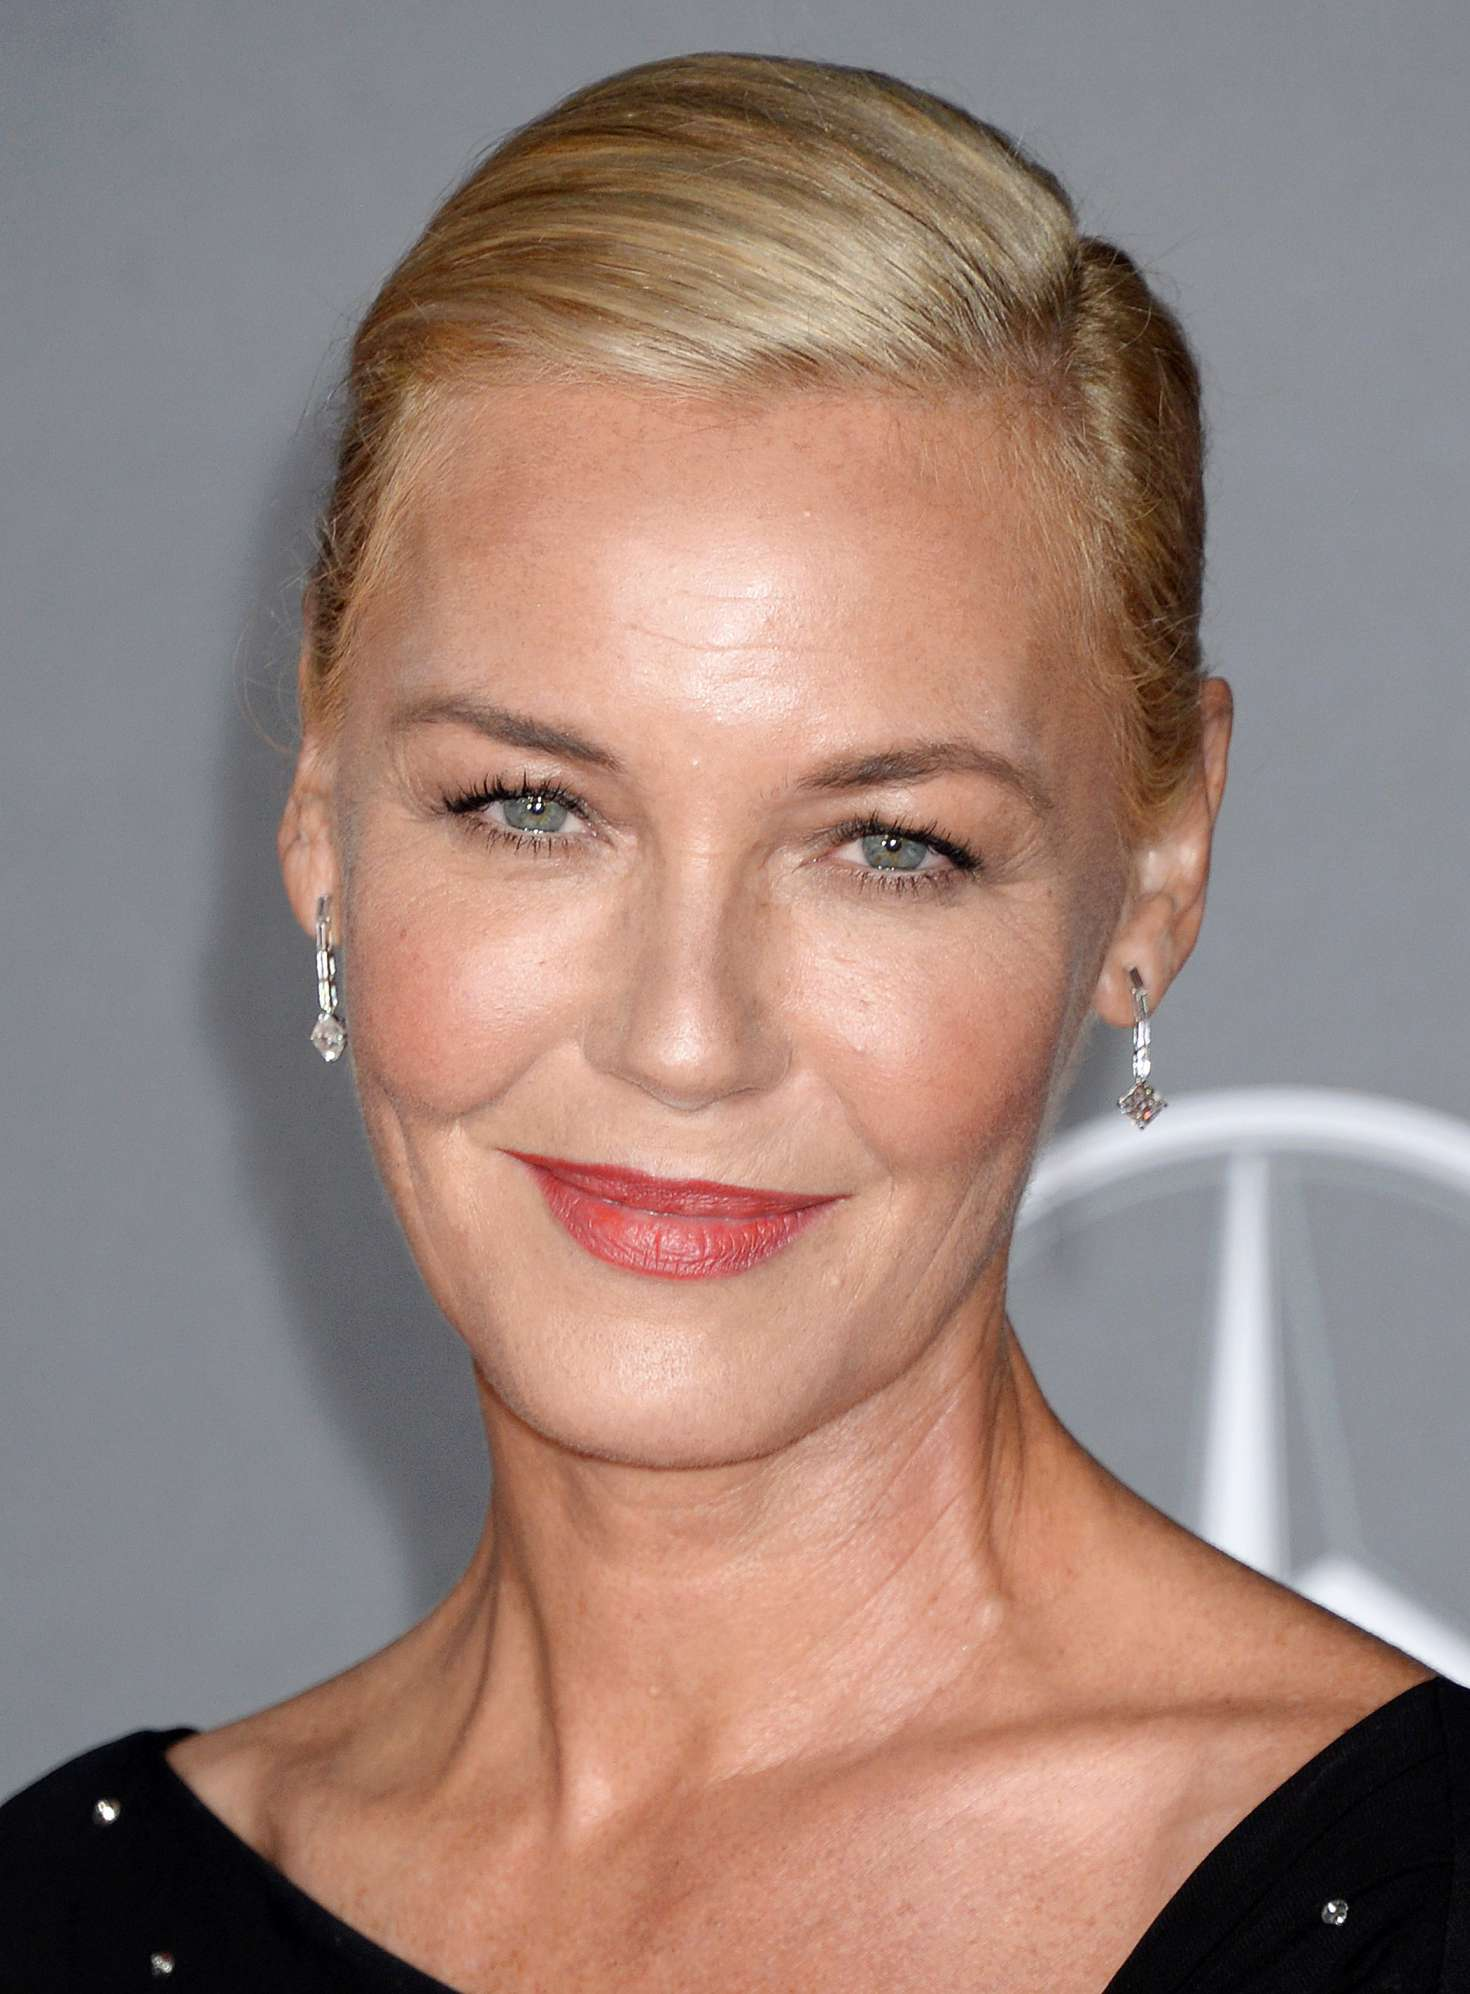 Connie Nielsen featured image